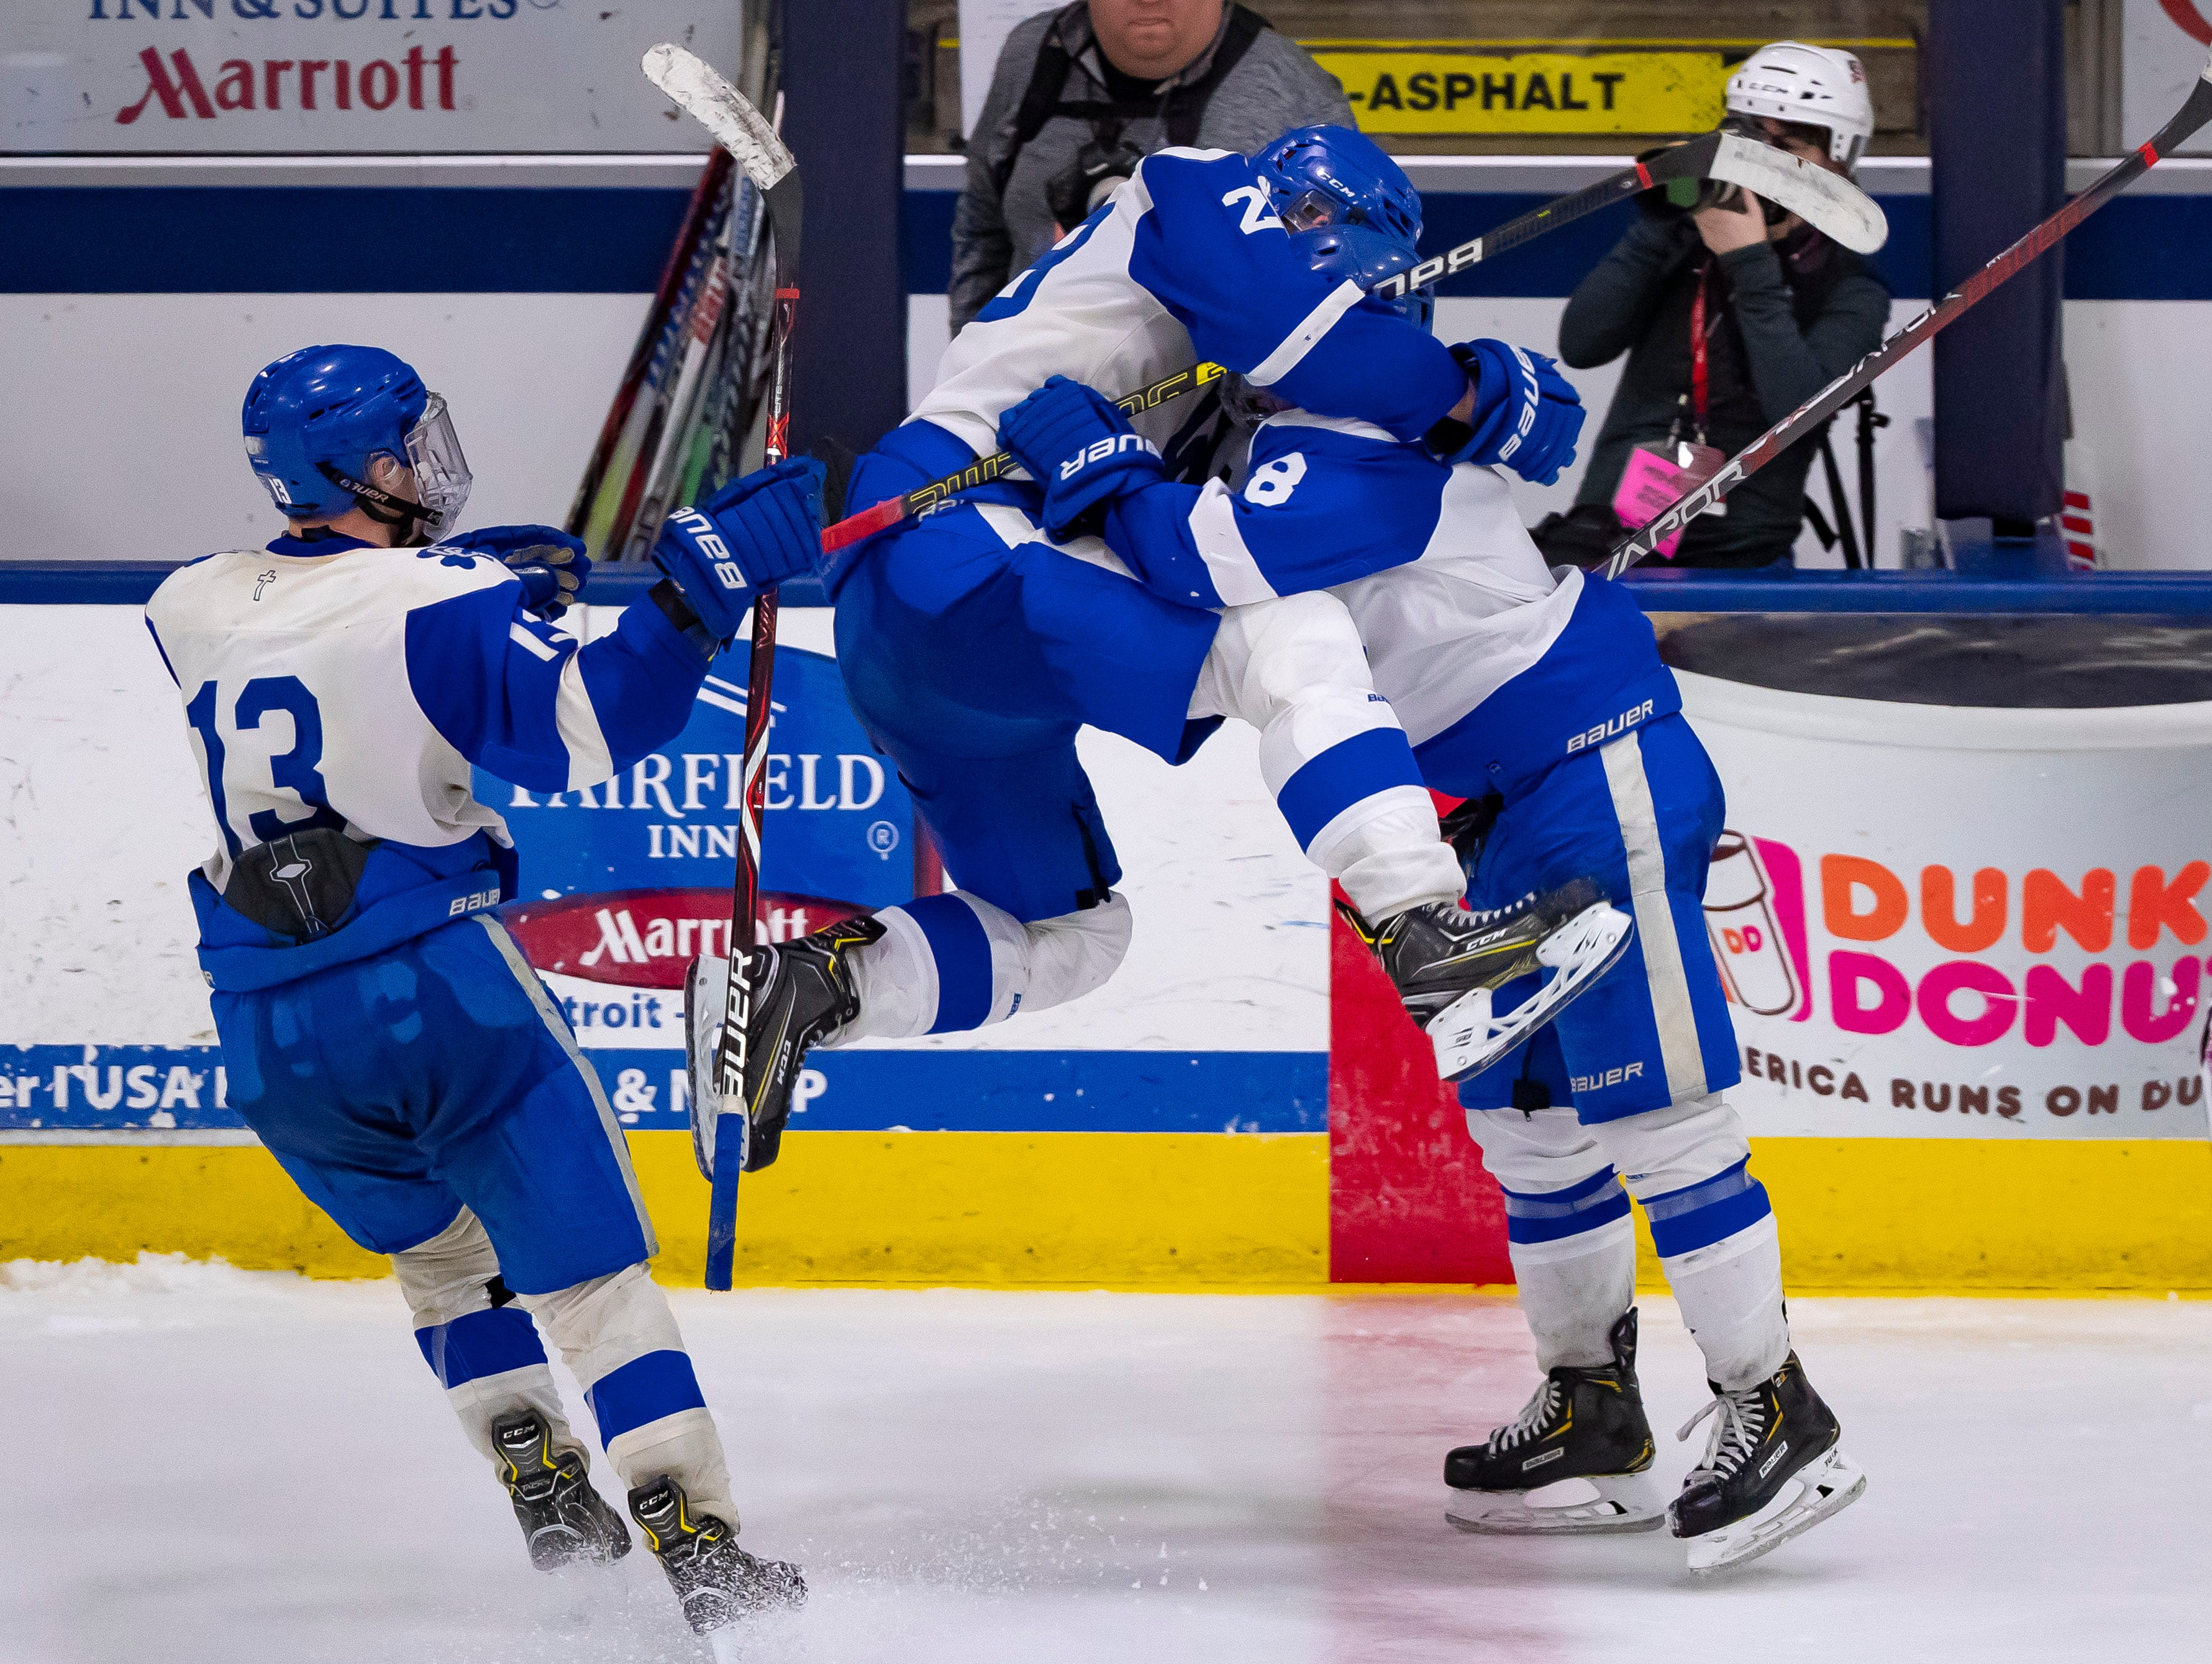 Ryan Marra (28) of Catholic Central celebrates his third-period, empty-net goal with teammate Joe Borthwick (8) and Zach Borchardt (13) during the MHSAA Division 1 Finals against Saginaw Heritage at USA Arena on March 9, 2019 in Plymouth, Michigan. Catholic Central won, 3-1.